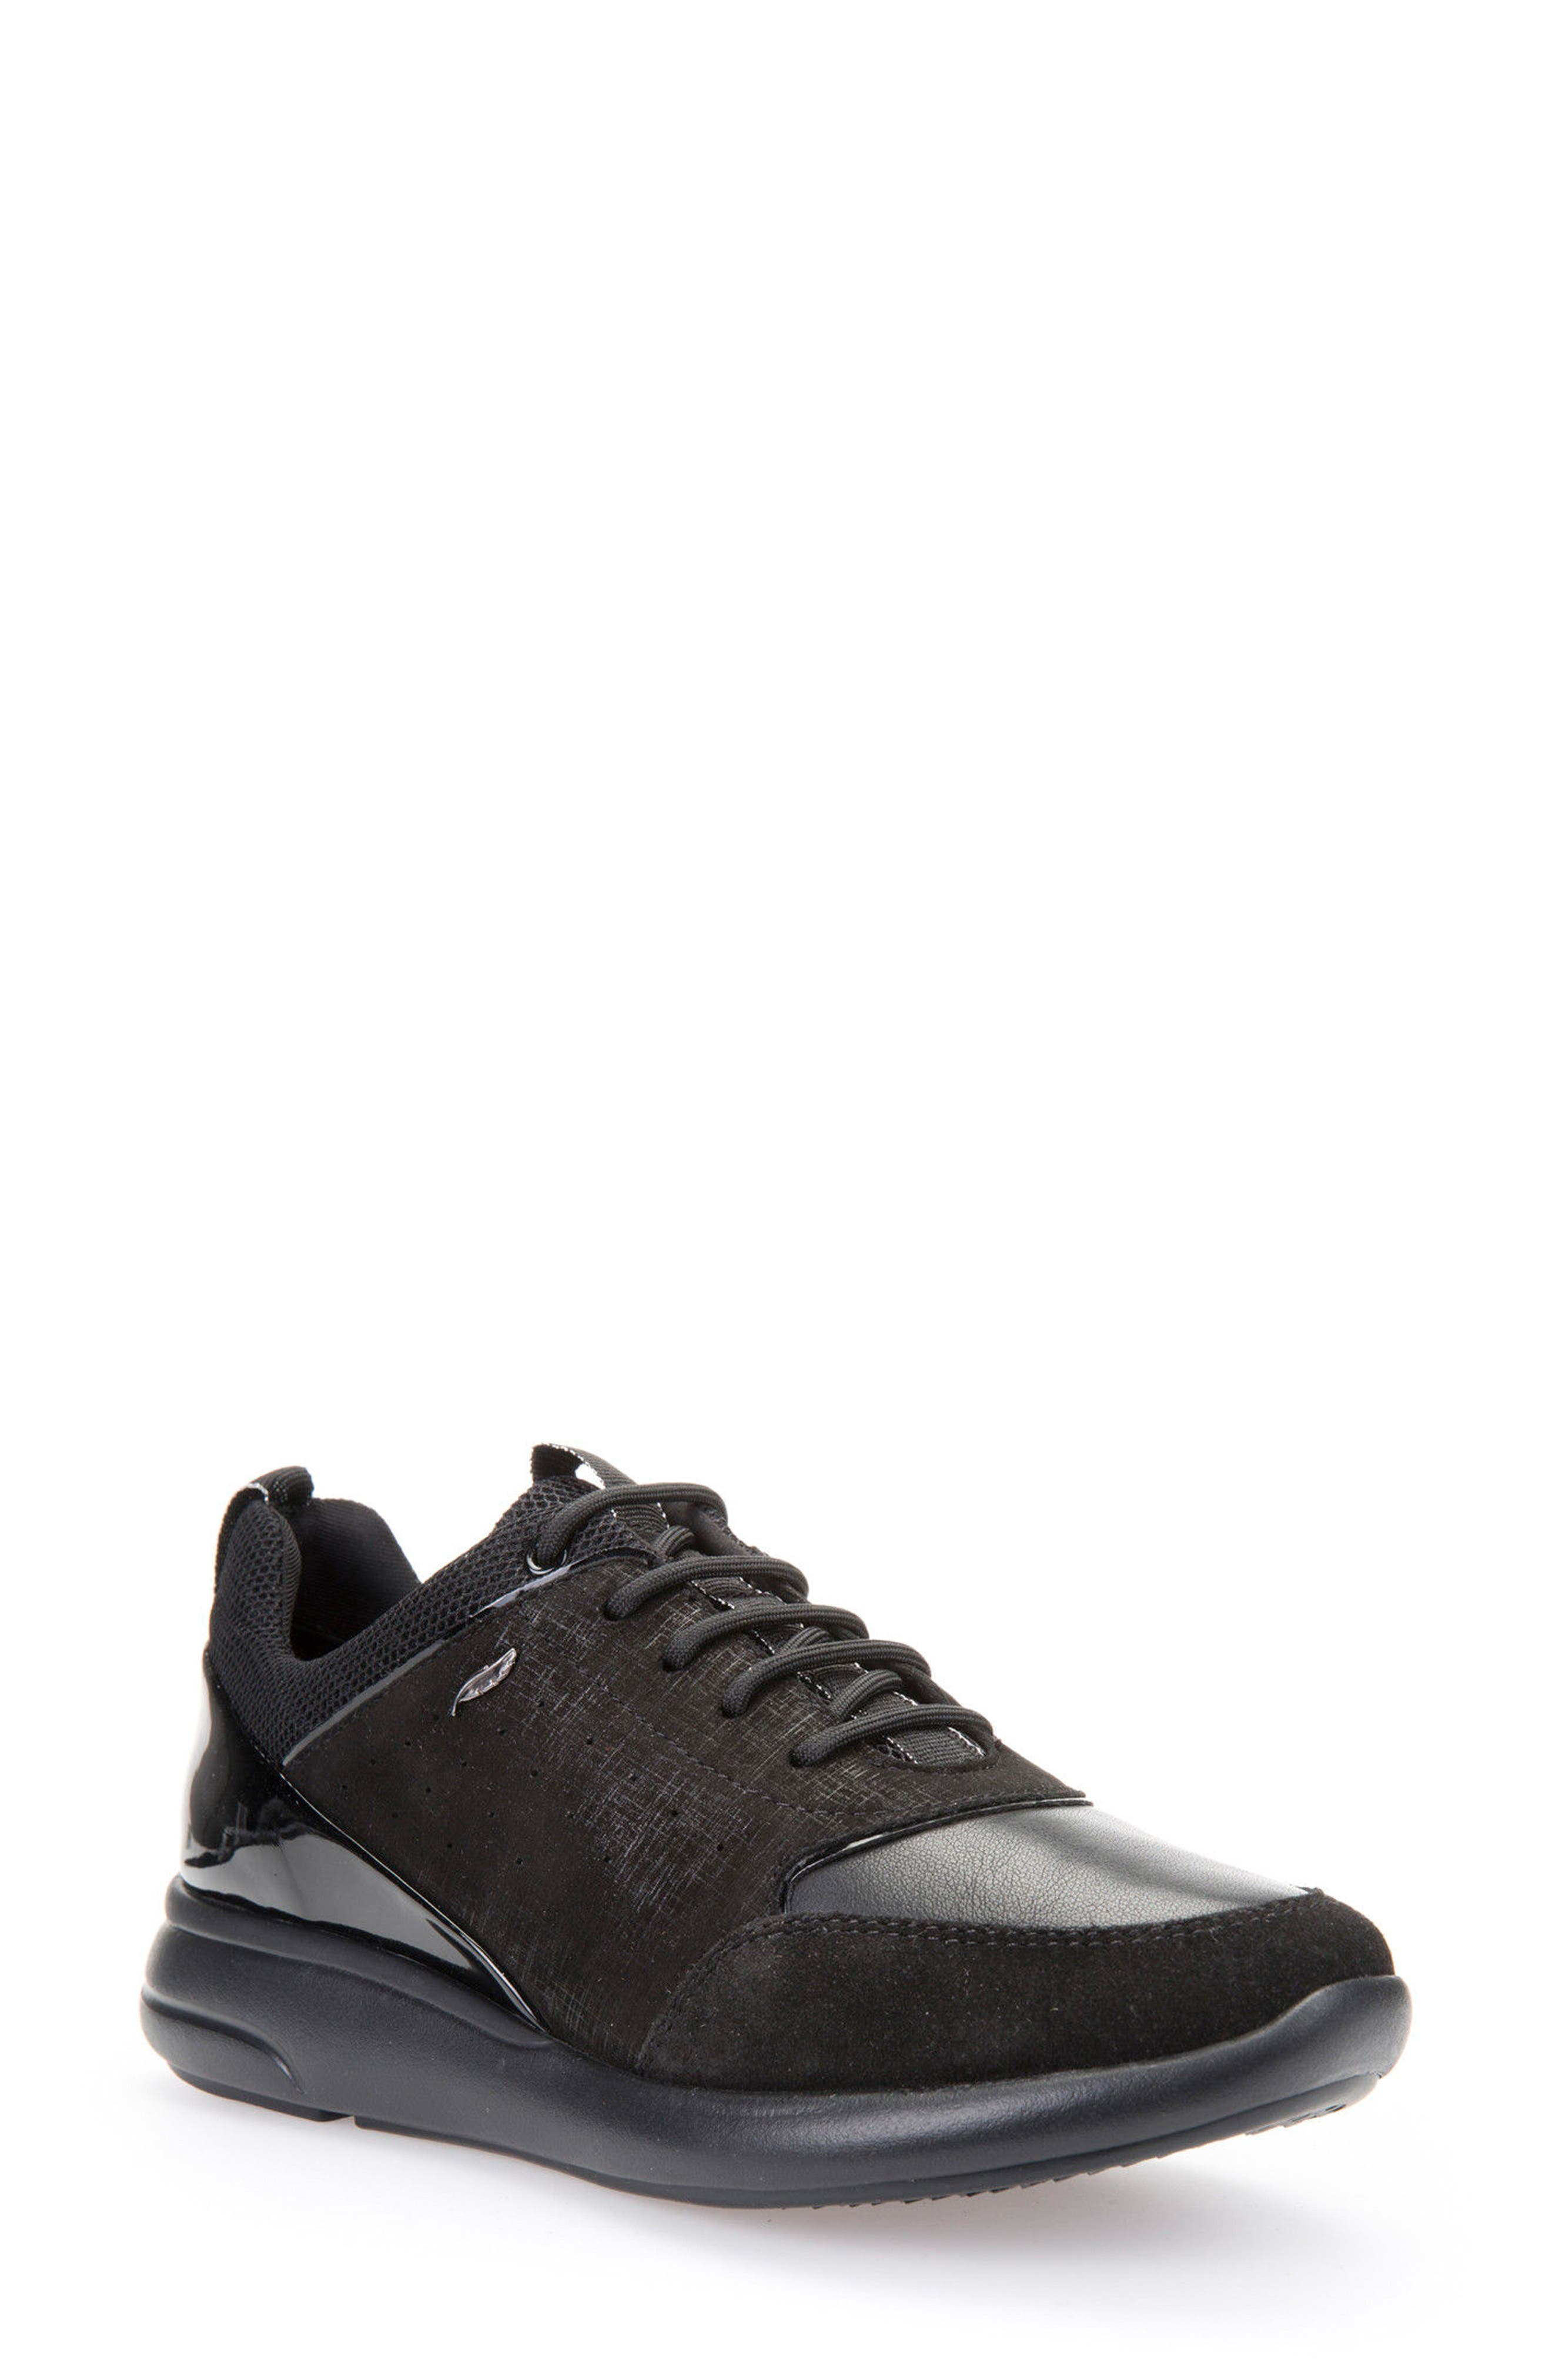 Ophira Sneaker,                         Main,                         color, Black Patent Leather